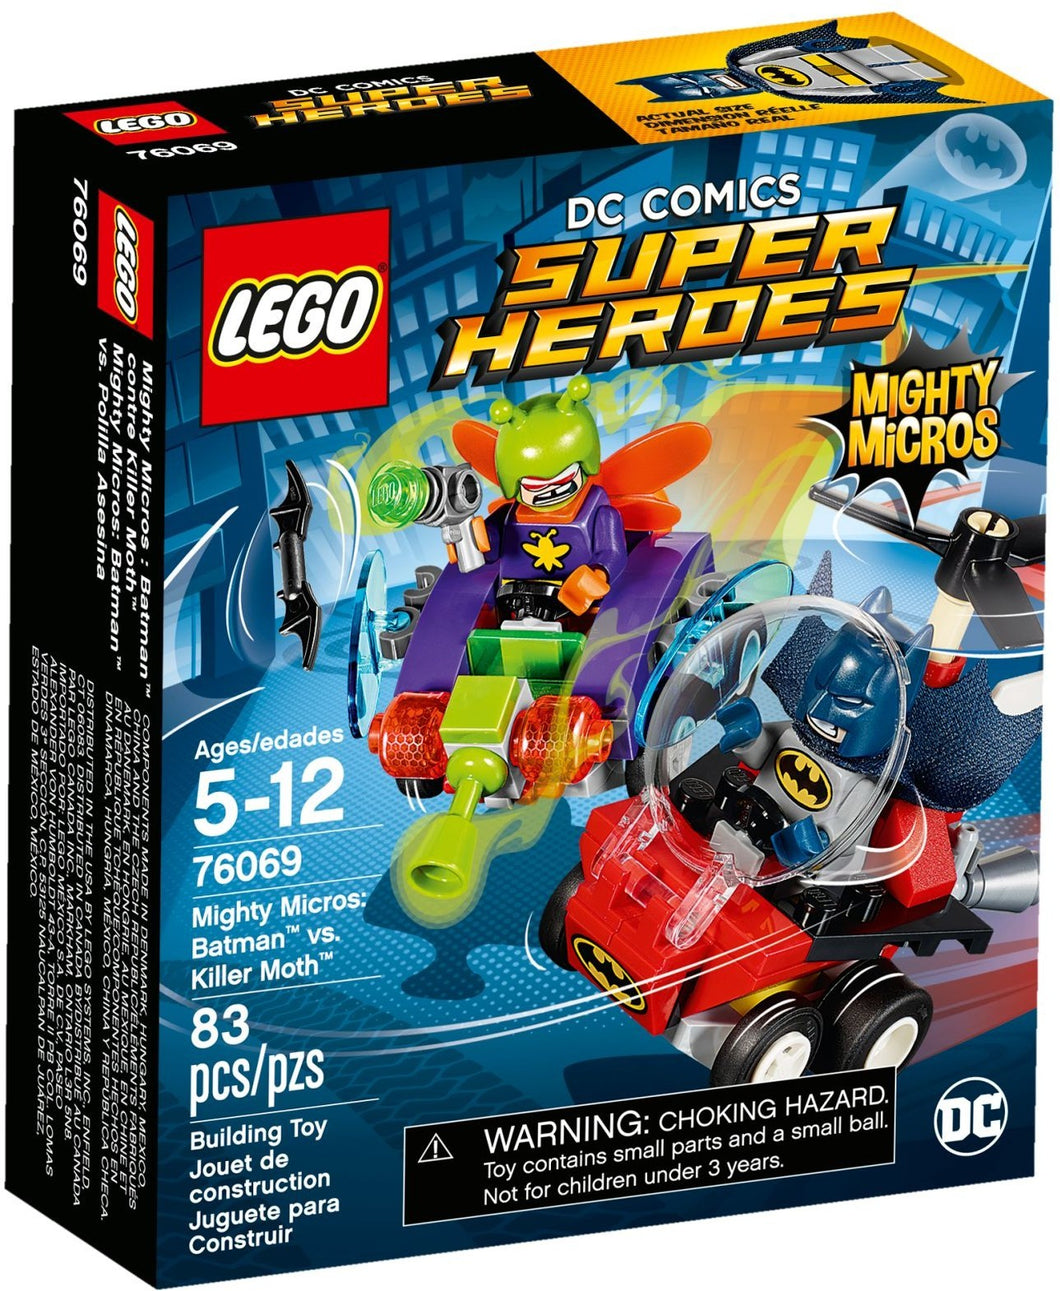 Lego 76069 Super Heroes Mighty Micros: Batman vs. Killer Moth Box